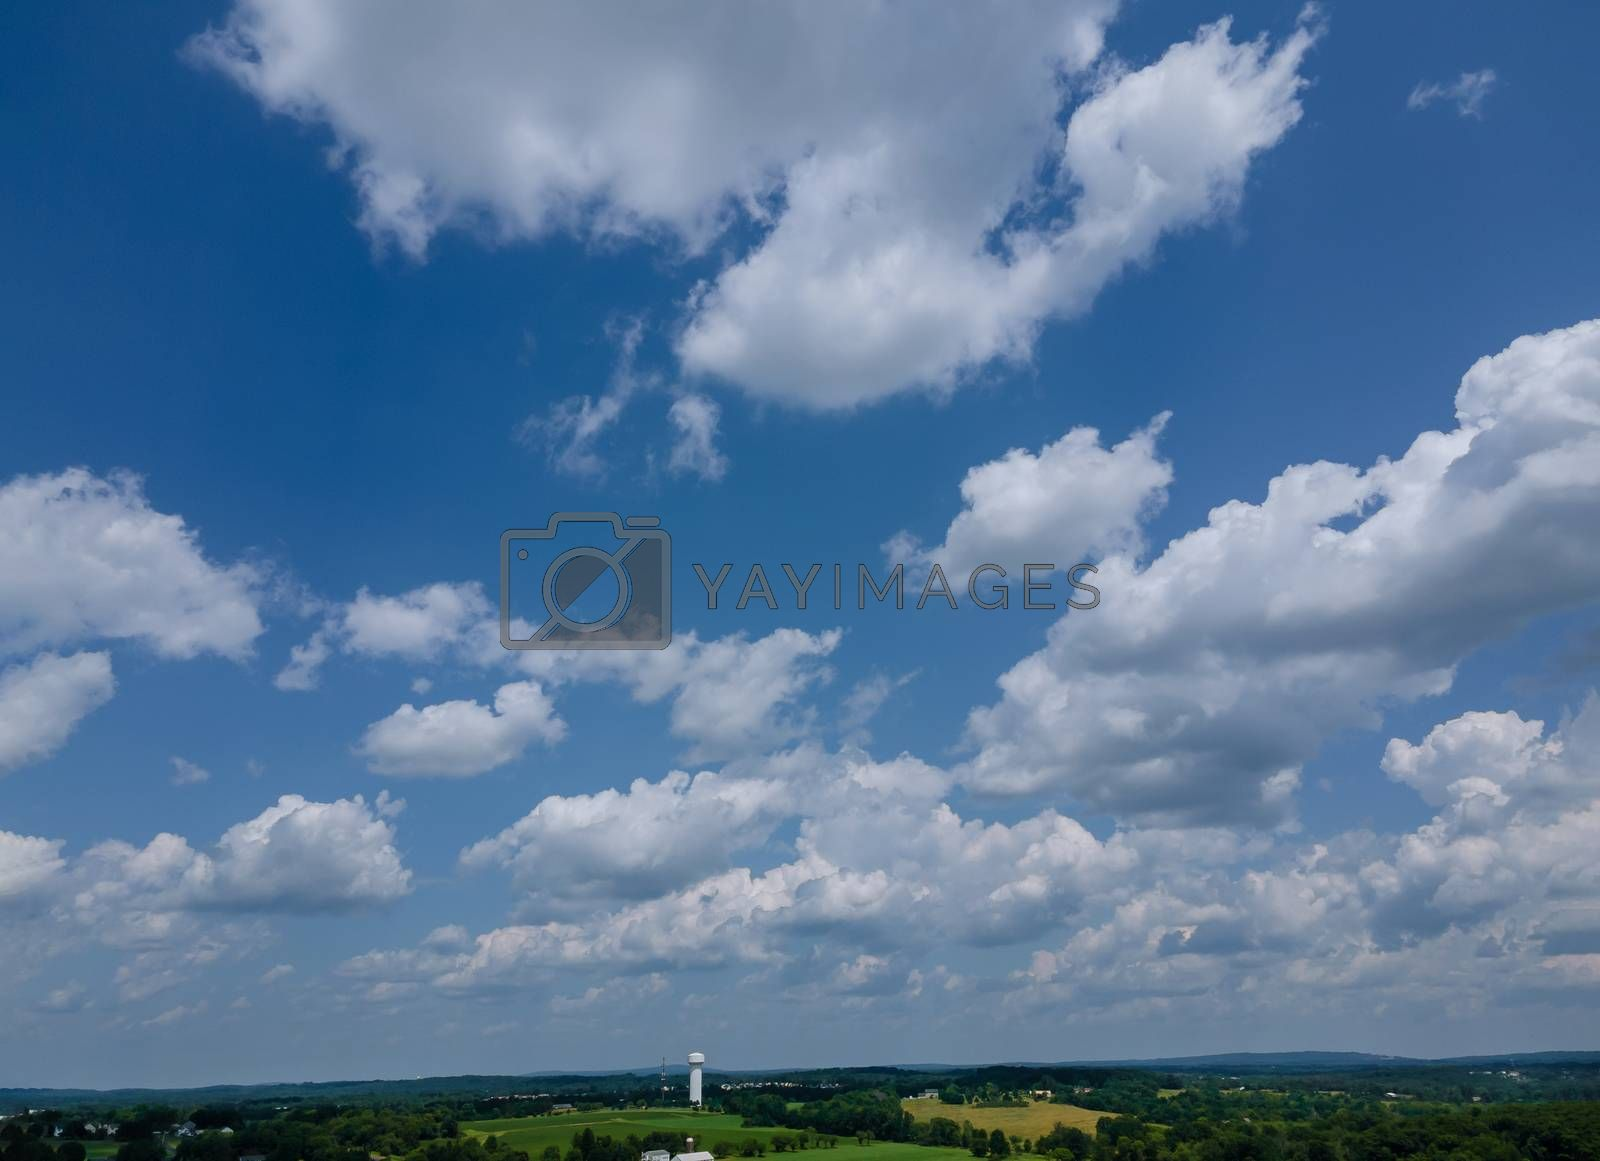 Cumulus cloud floated in beautiful blue azure sky with an amazing of white fluffy clouds